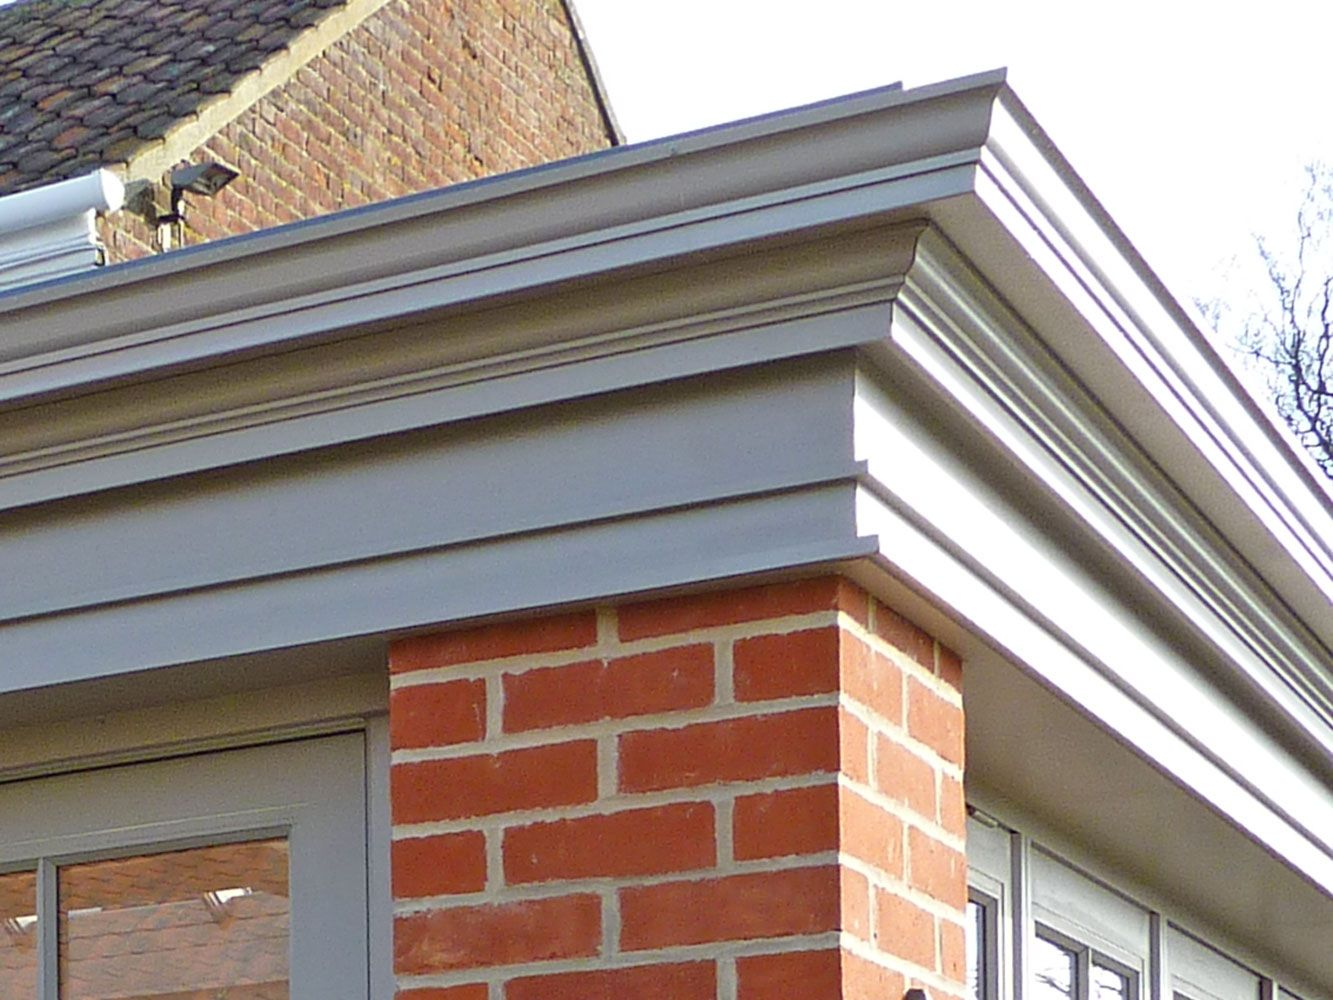 Get the orangery look using a perimeter edge fascia with guttering shown here is the cavendish orangery fascia corner joint